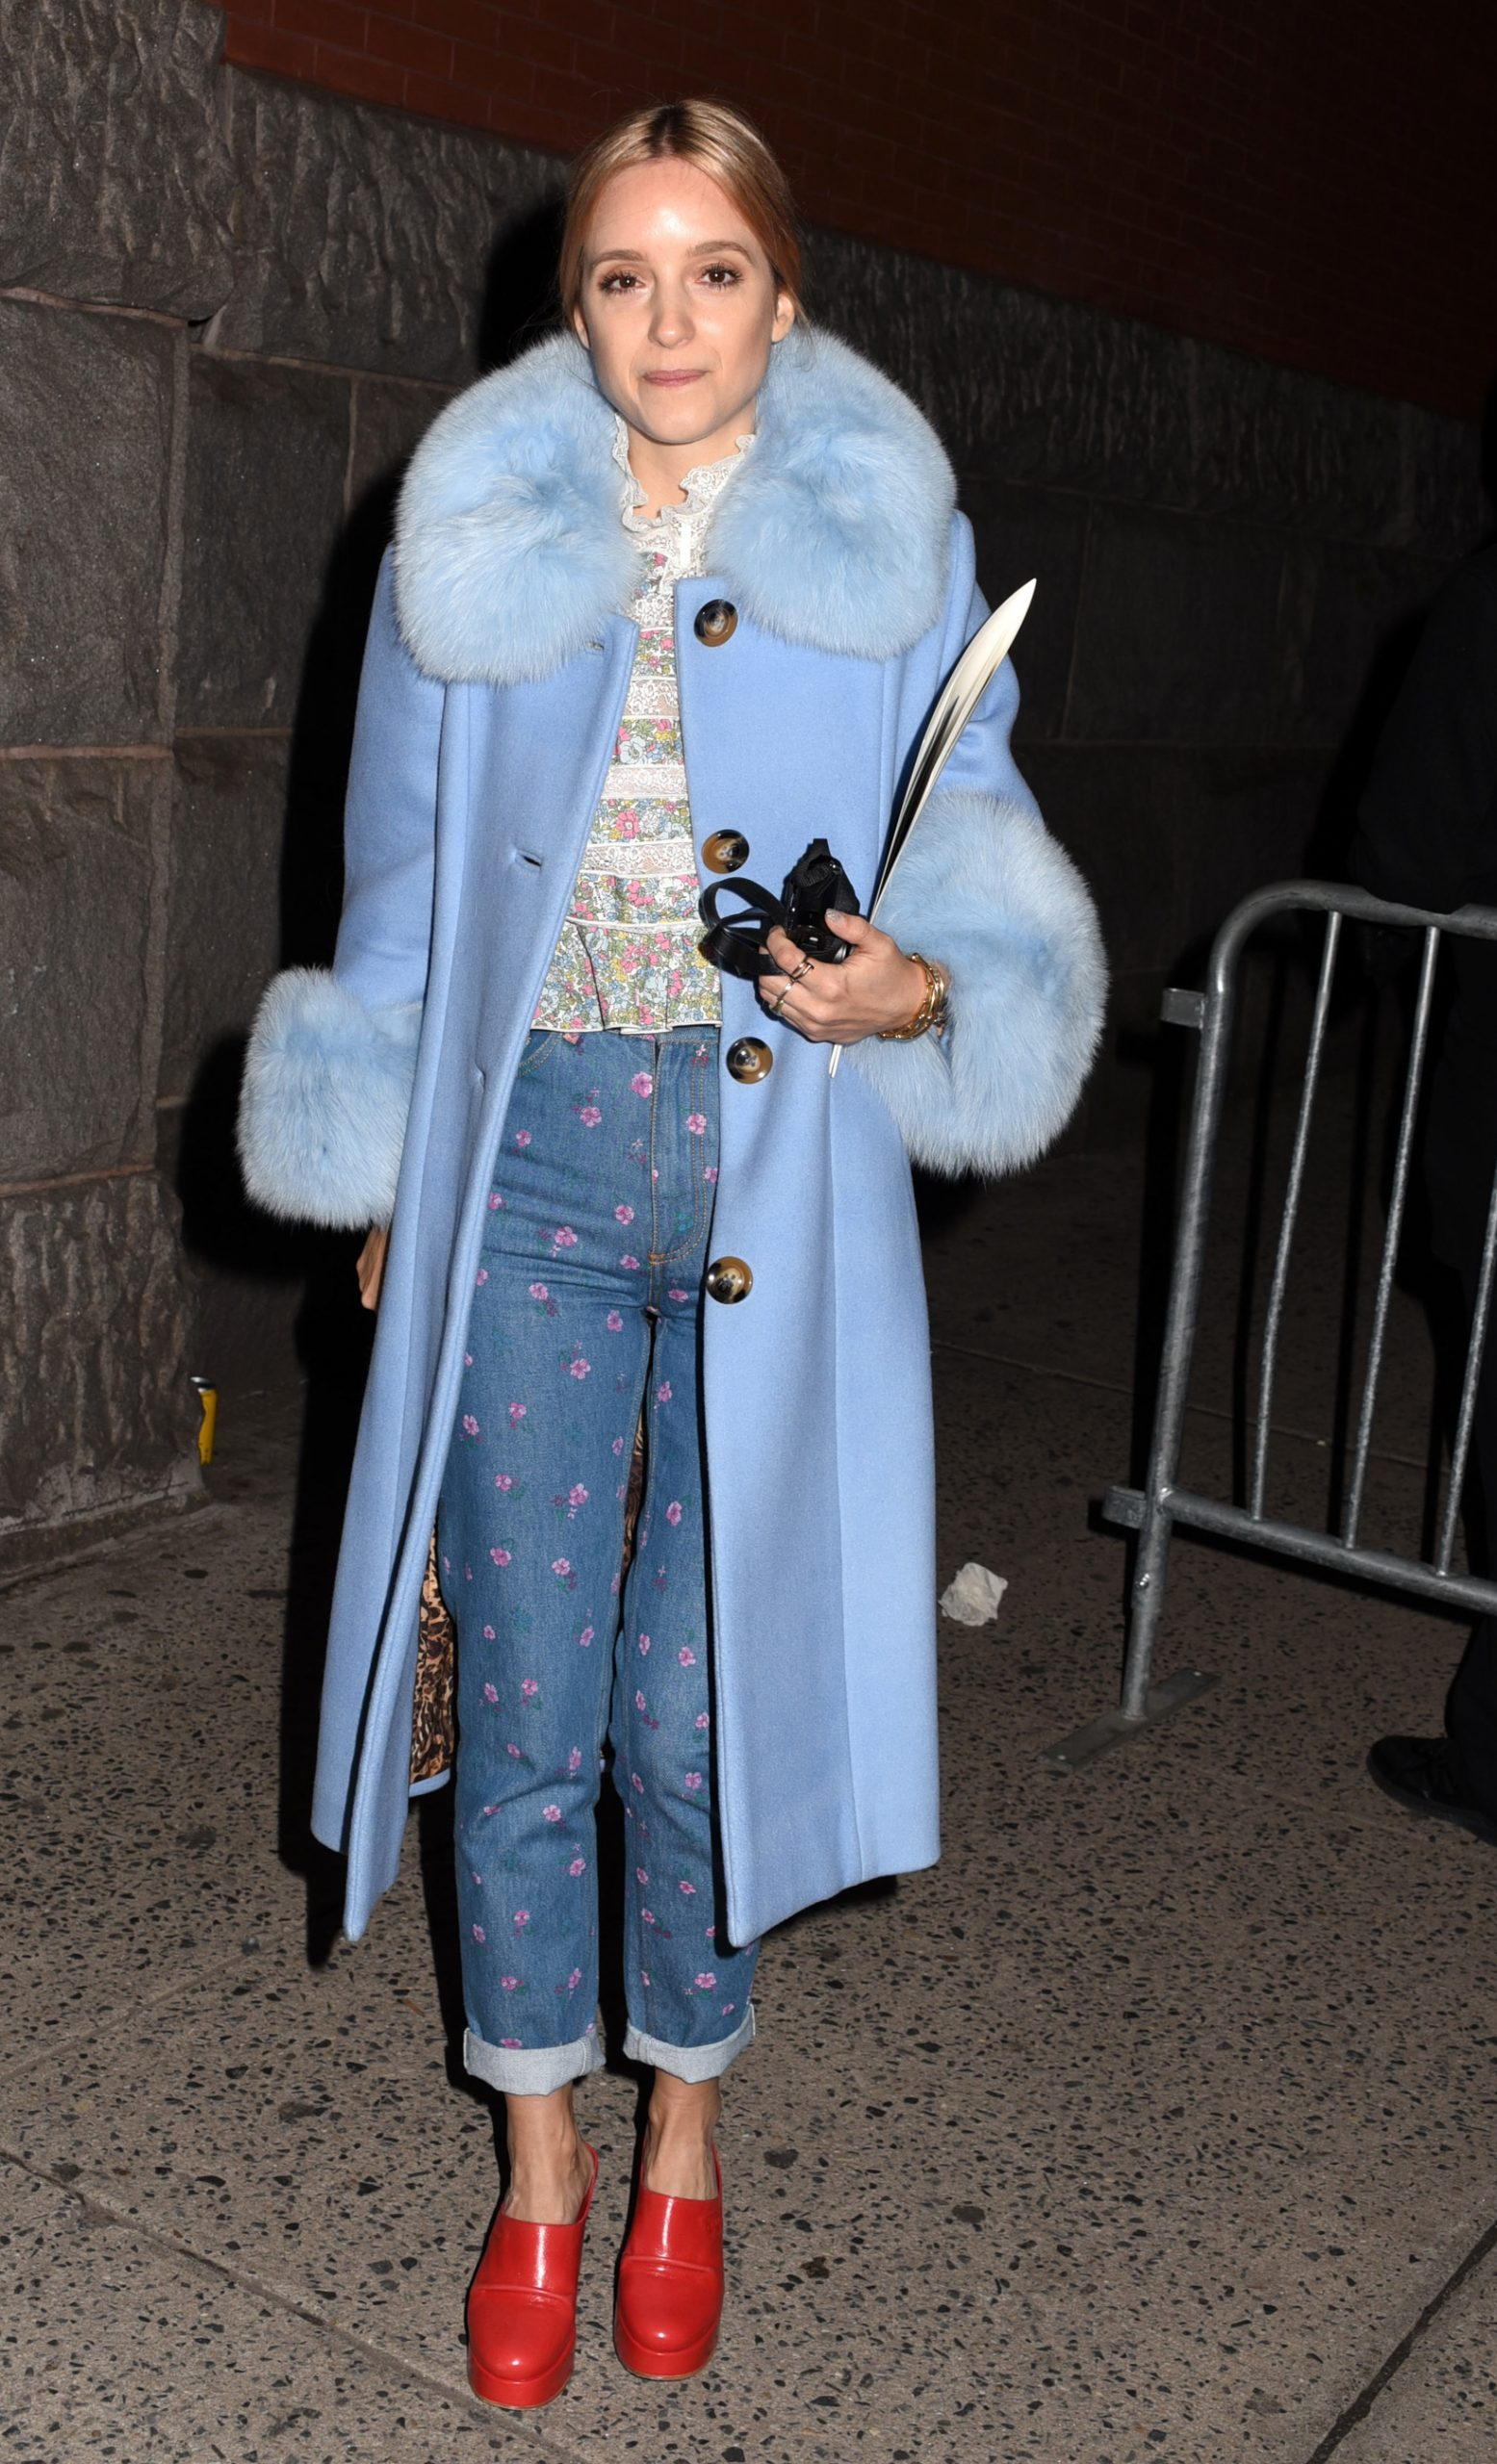 Marc Jacobs Celebrities Fall 2020 Fashion Show Photos